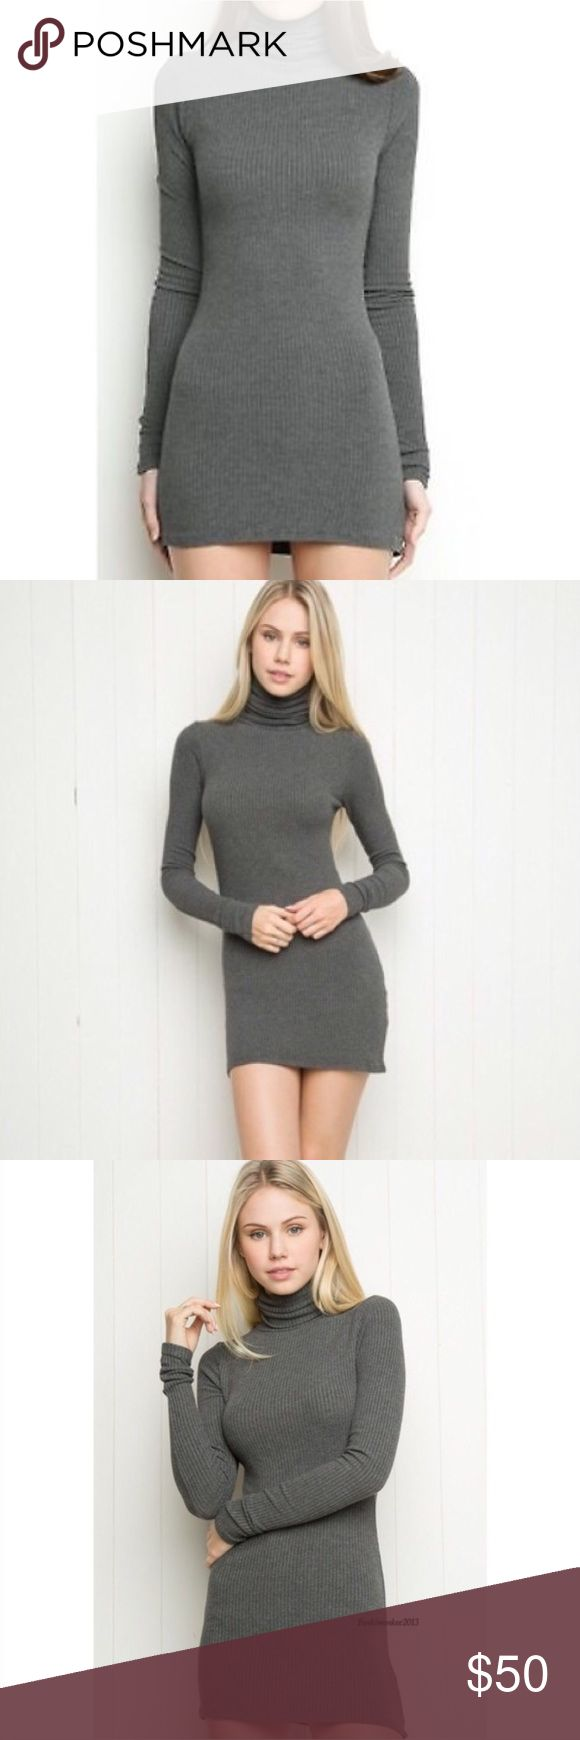 """Brandy Melville Adelie Gray Turtleneck Dress brandy melville adelie dress. rare. dark gray ribbed long sleeve turtleneck style. super soft and stretchy. such a staple piece! could also be worn as a tunic on taller gals. would best fit a size large and under. bodycon / stretch style. size: one size, see measurements measurements: bust (across)- 14.5""""-20"""" / waist (across)- 10""""-18"""" / length- 30"""" / sleeve inseam- 22"""" fabric content: 57% cotton, 40&% viscose, 3% elastane flaws: none Brandy…"""